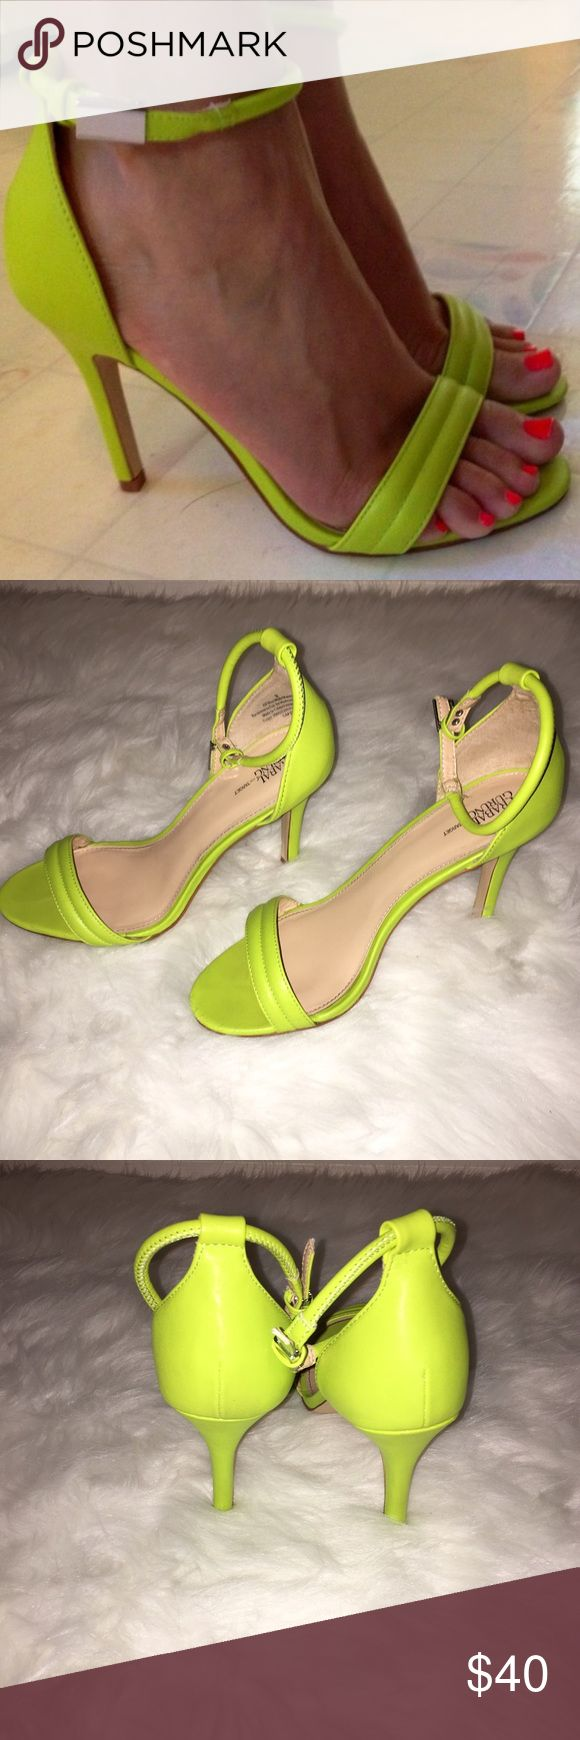 Prabal Gurung Neon Sandals Please note... Runs 1/2 Size Big. No Box Included! ❌No Trades!❌Not Zara! Just for views! Zara Shoes